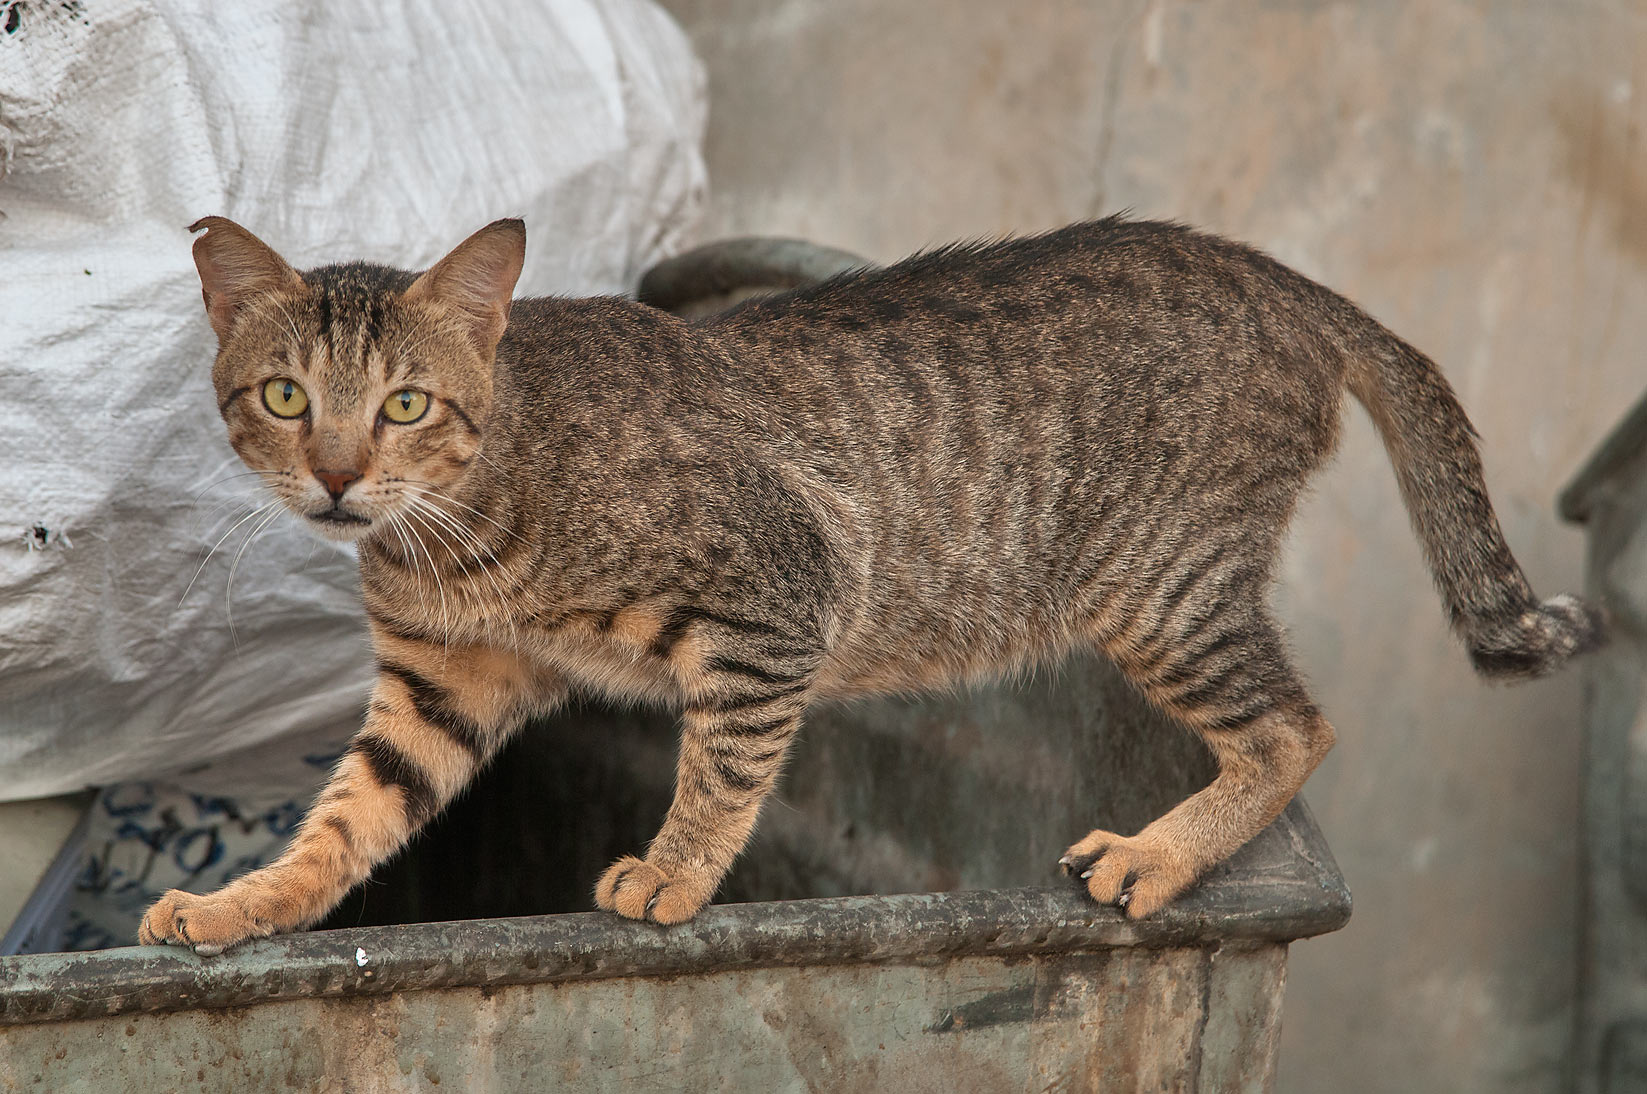 Tabby cat on a dumpster near Al Najada St., Musheirib area. Doha, Qatar